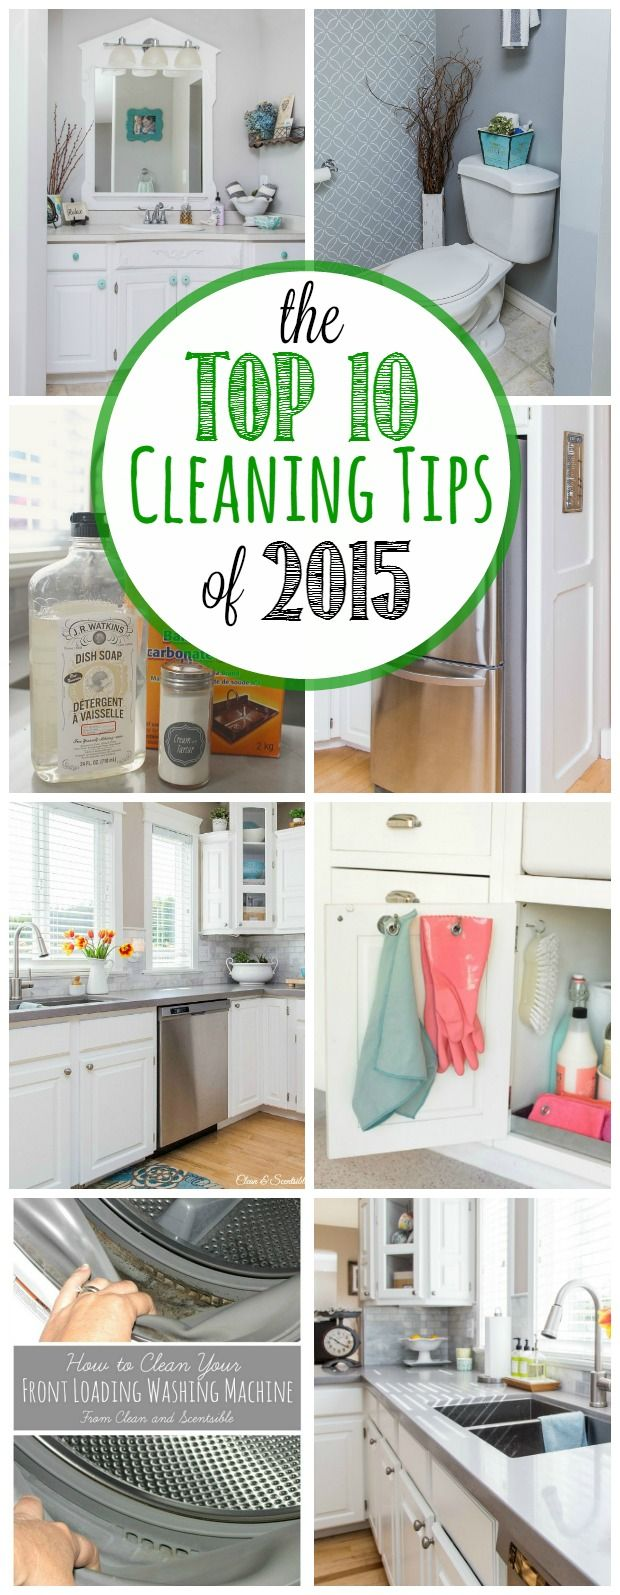 The best cleaning tips from 2015 - tons of great green cleaning ideas and tricks to get your home cleaned from top to bottom. A must pin!